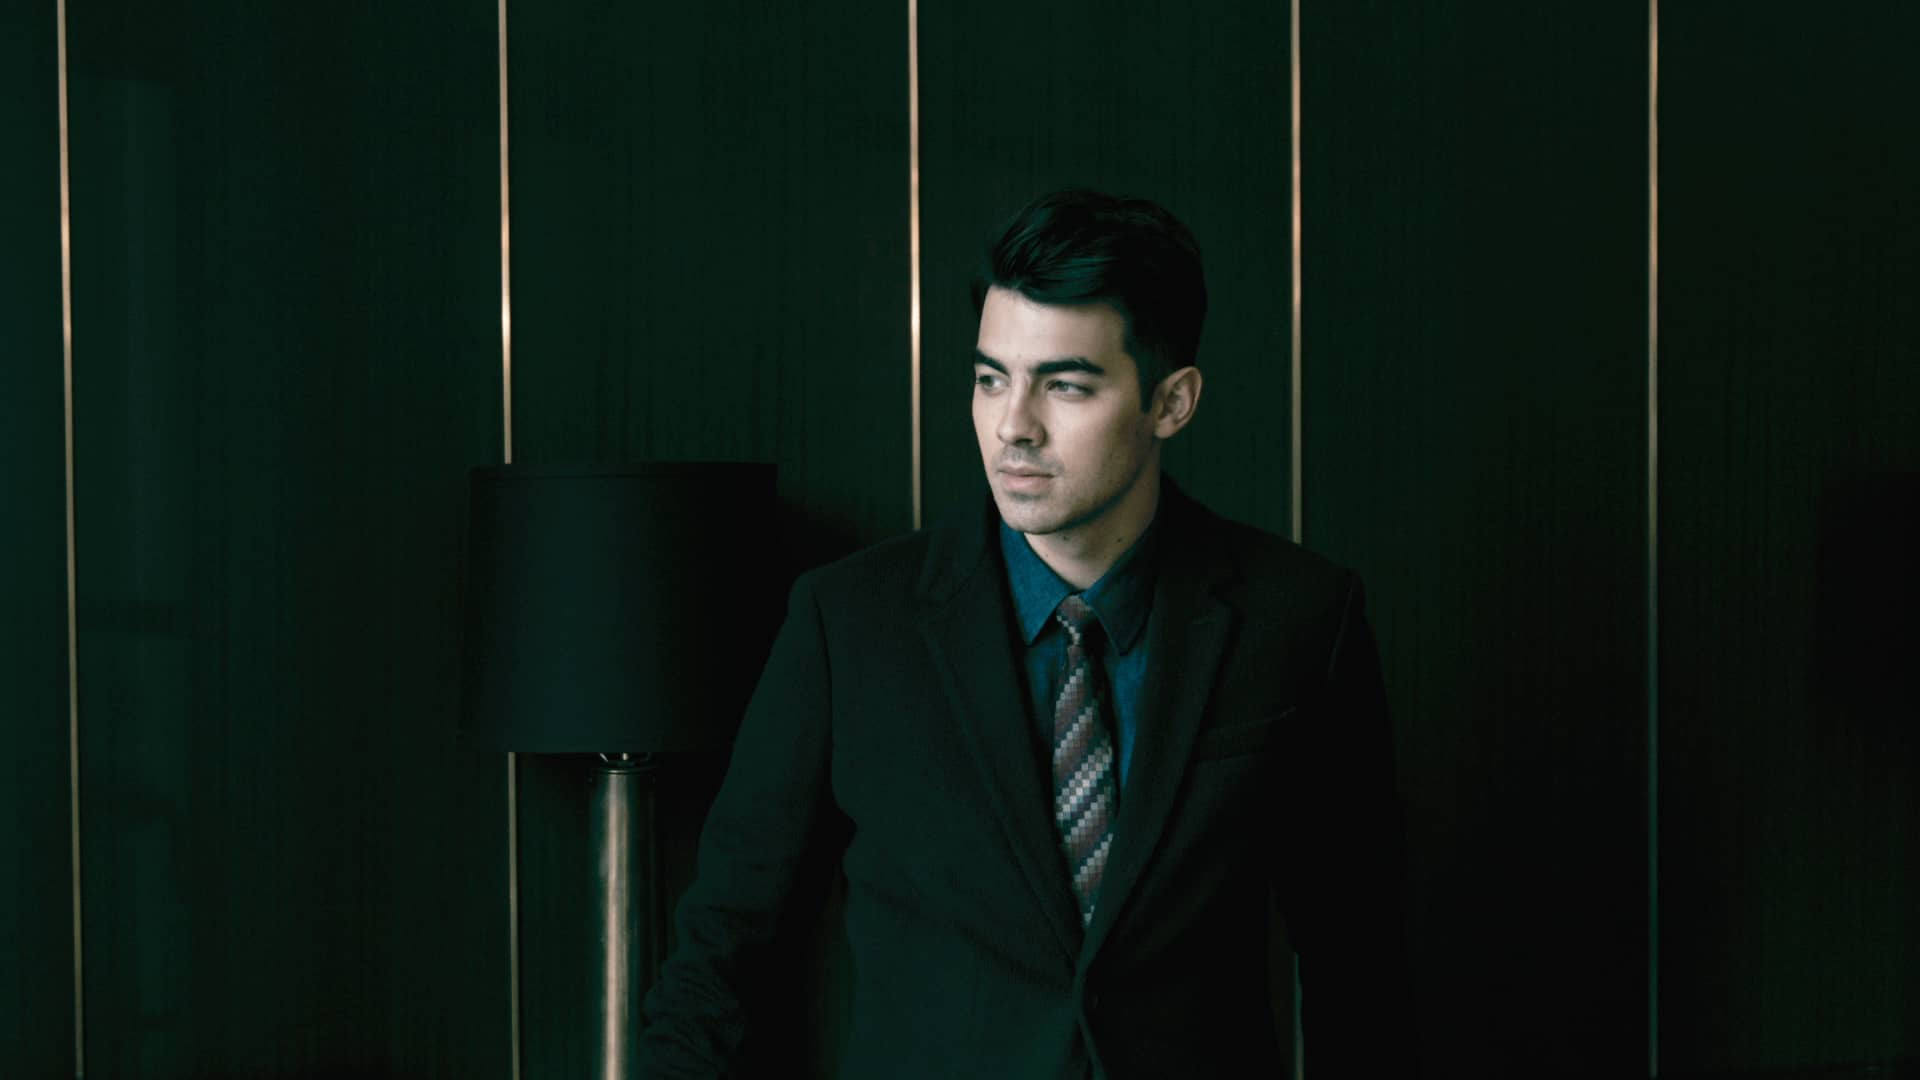 Joe Jonas Wallpapers Hd